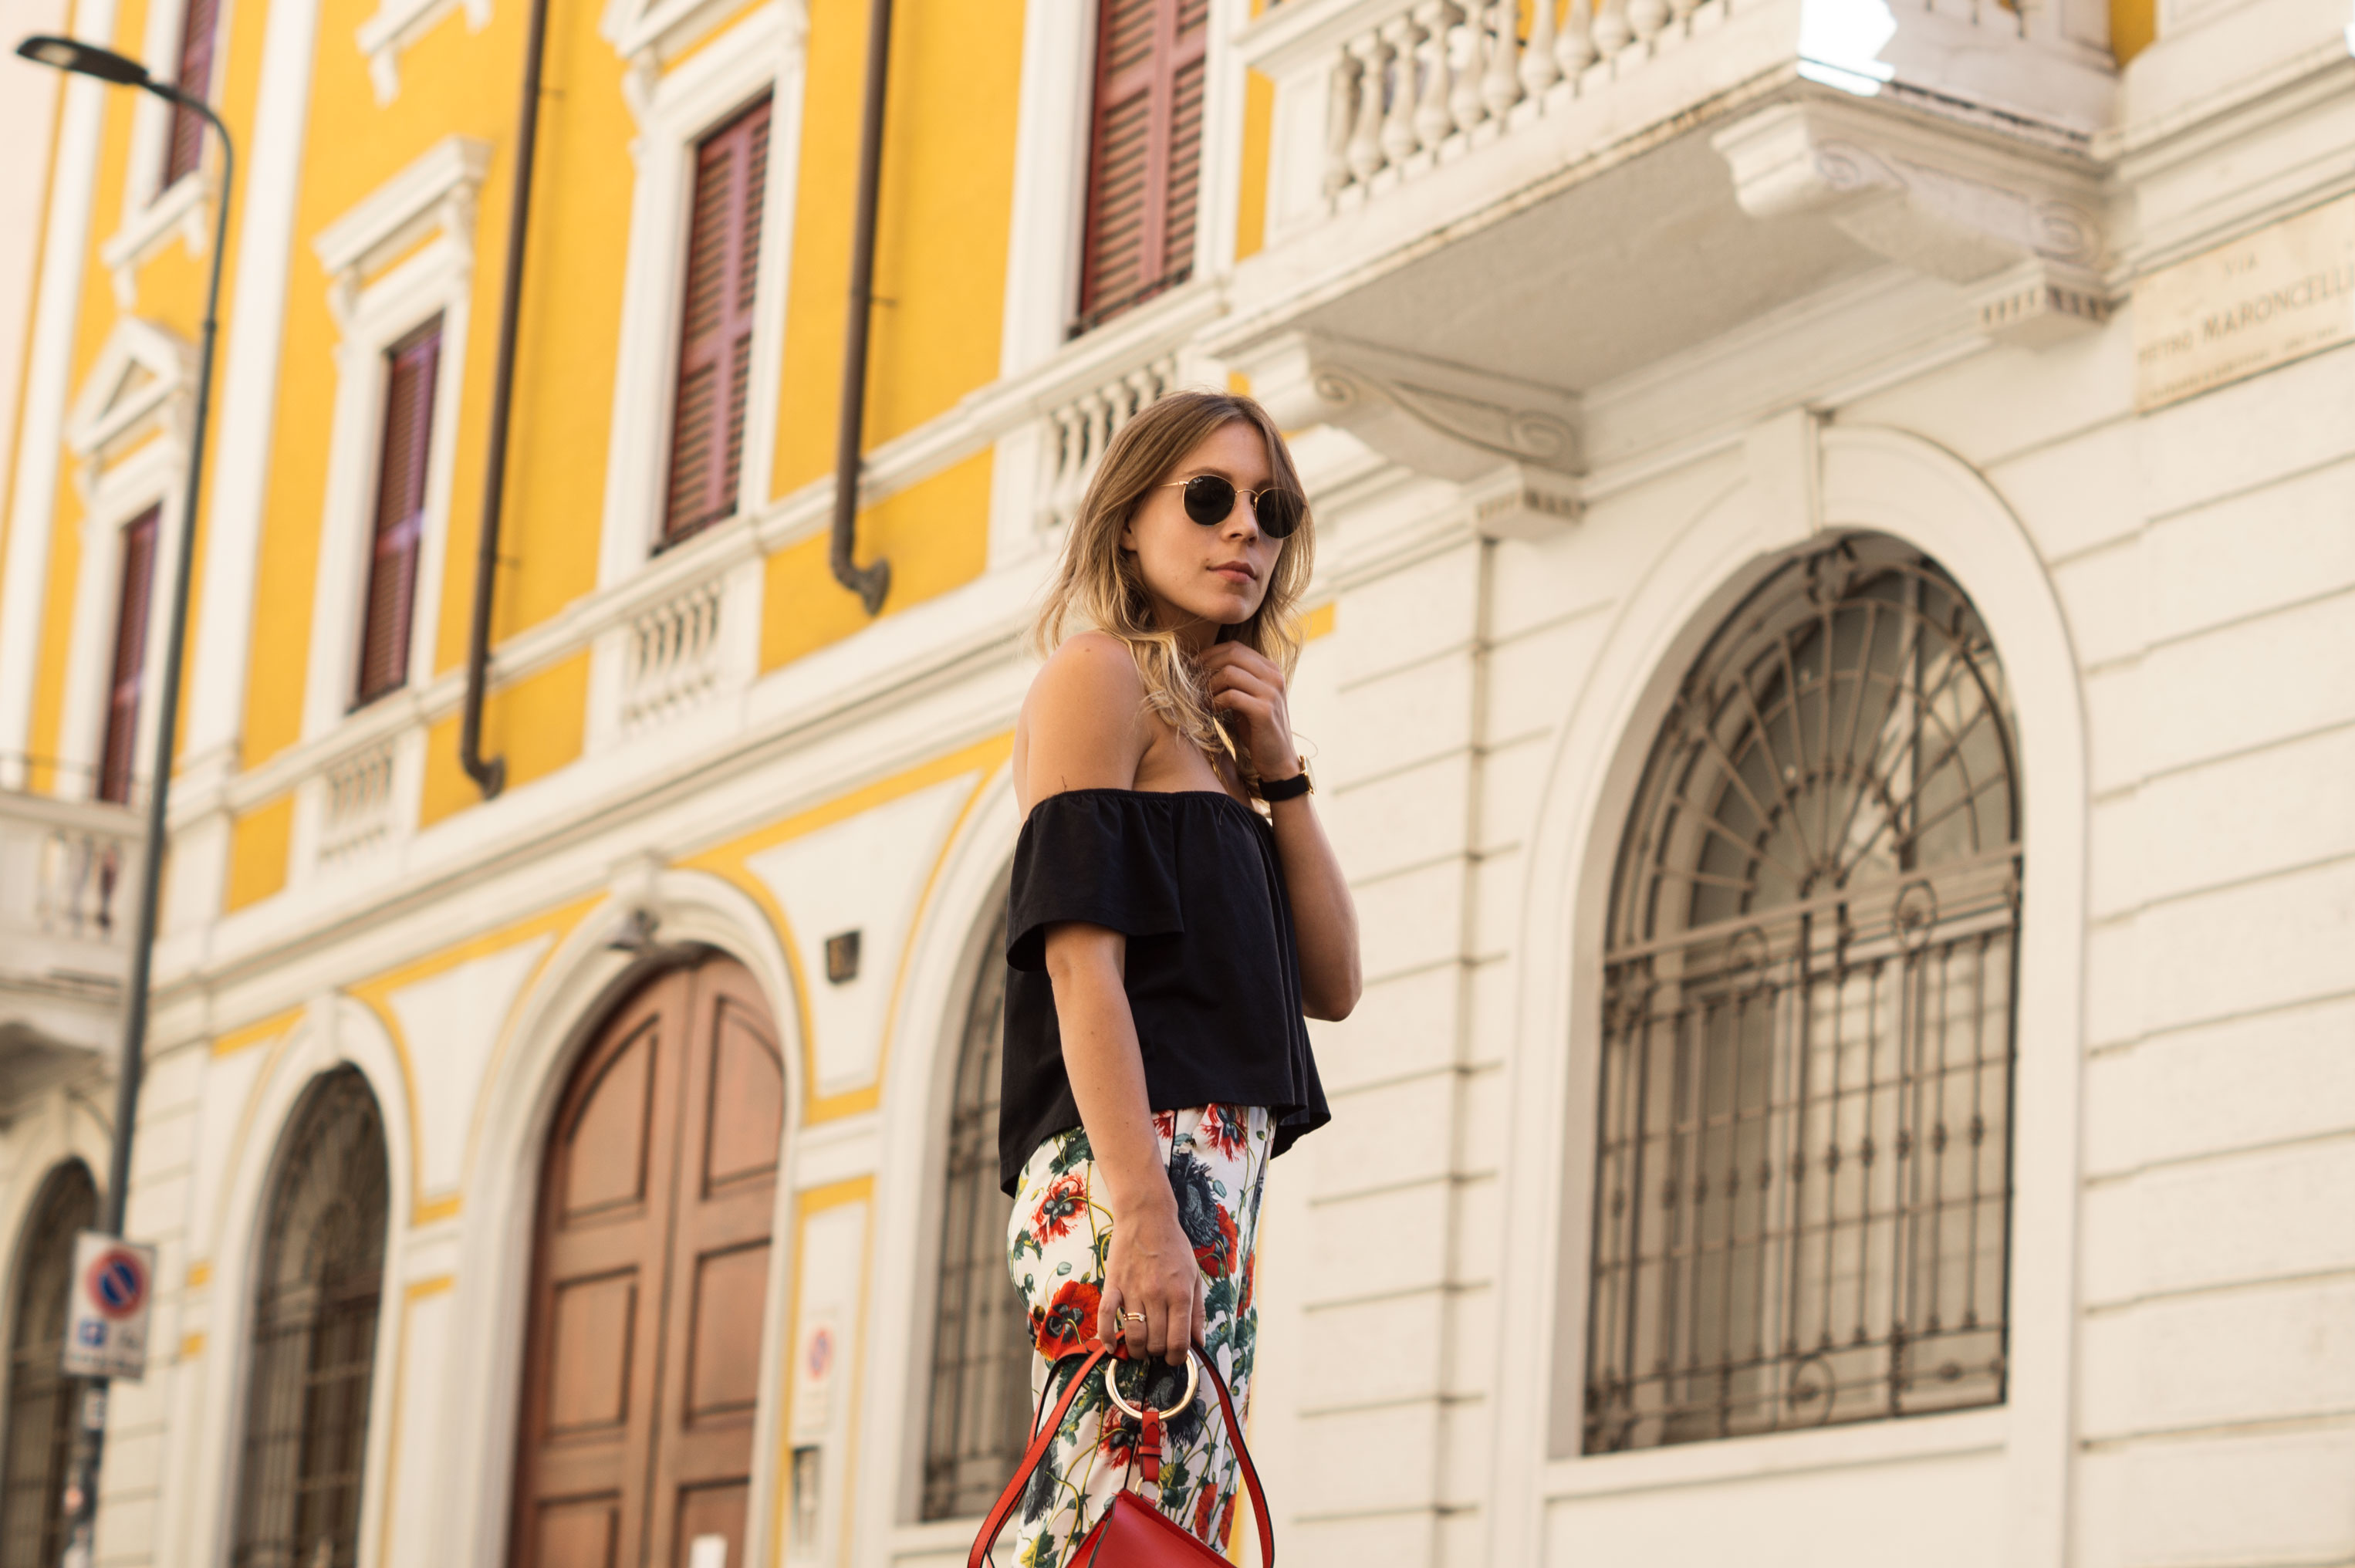 H&M Printhose Milan Sariety Fashionblogger Sommerlook Mailand rote Tasche Chanel Schuhe Dupes Summer Floral Print-8